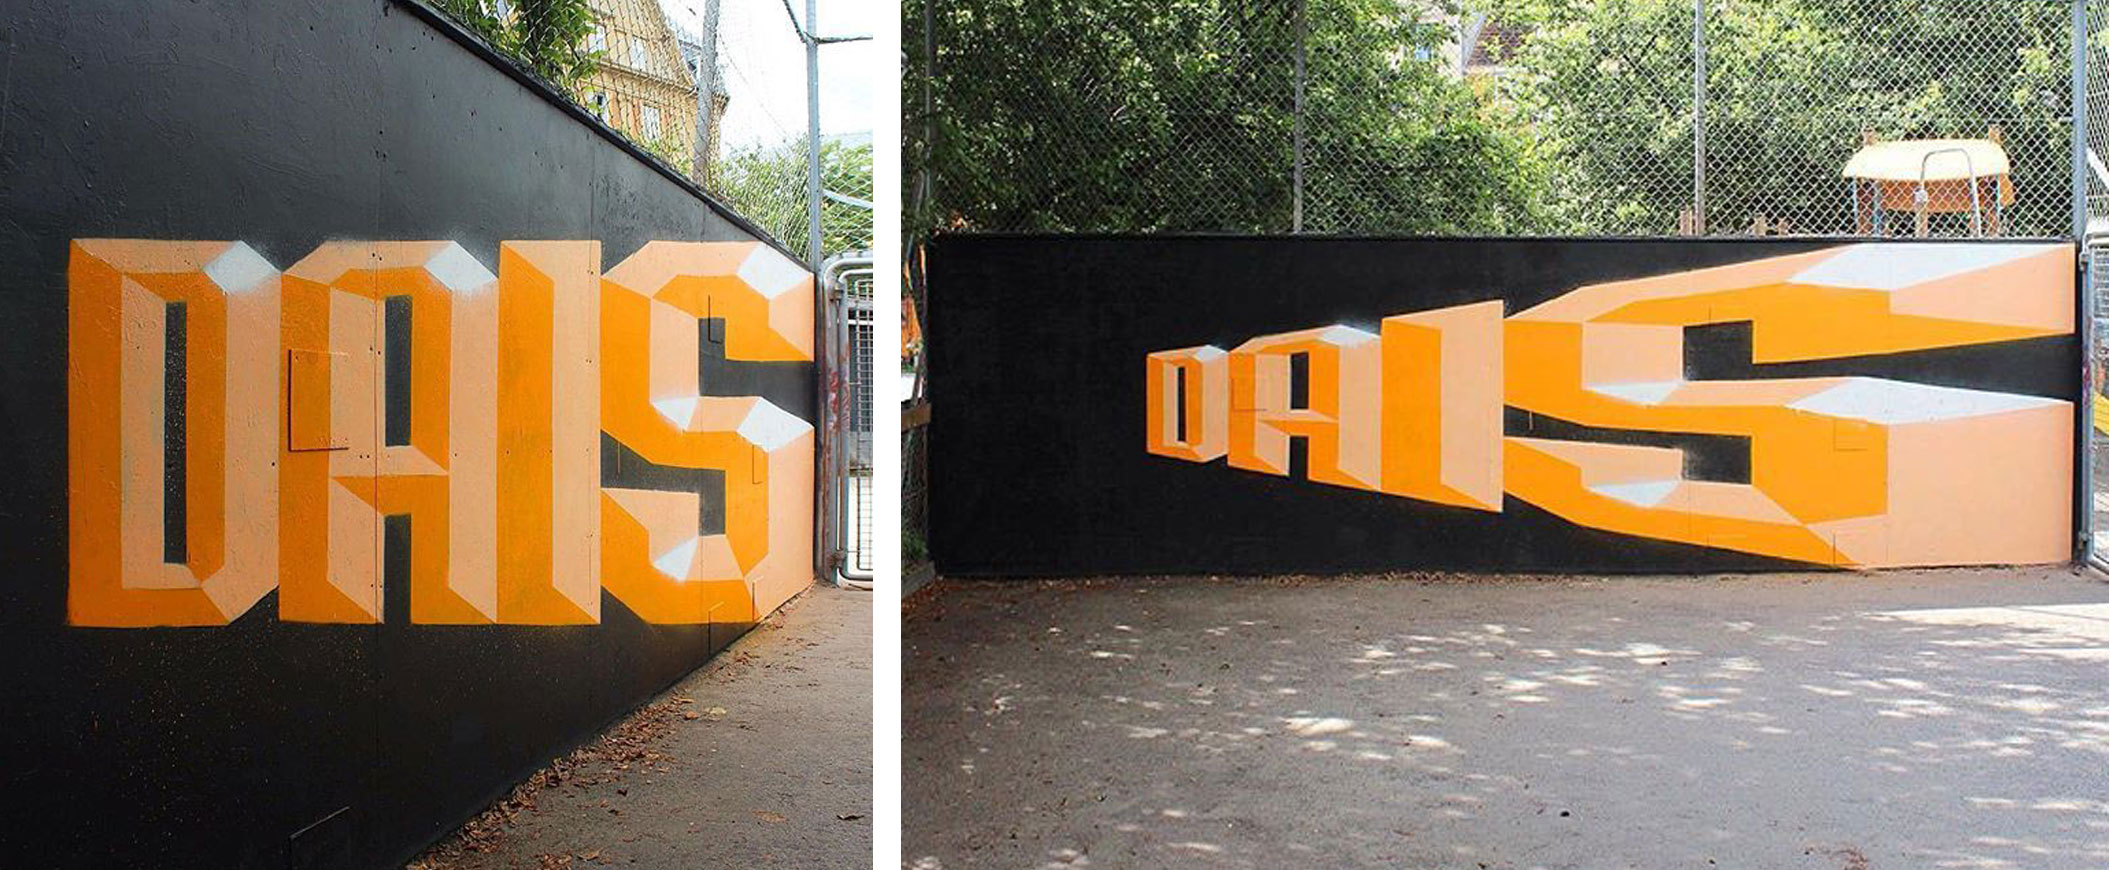 Anamorphic Text Graffiti Mural